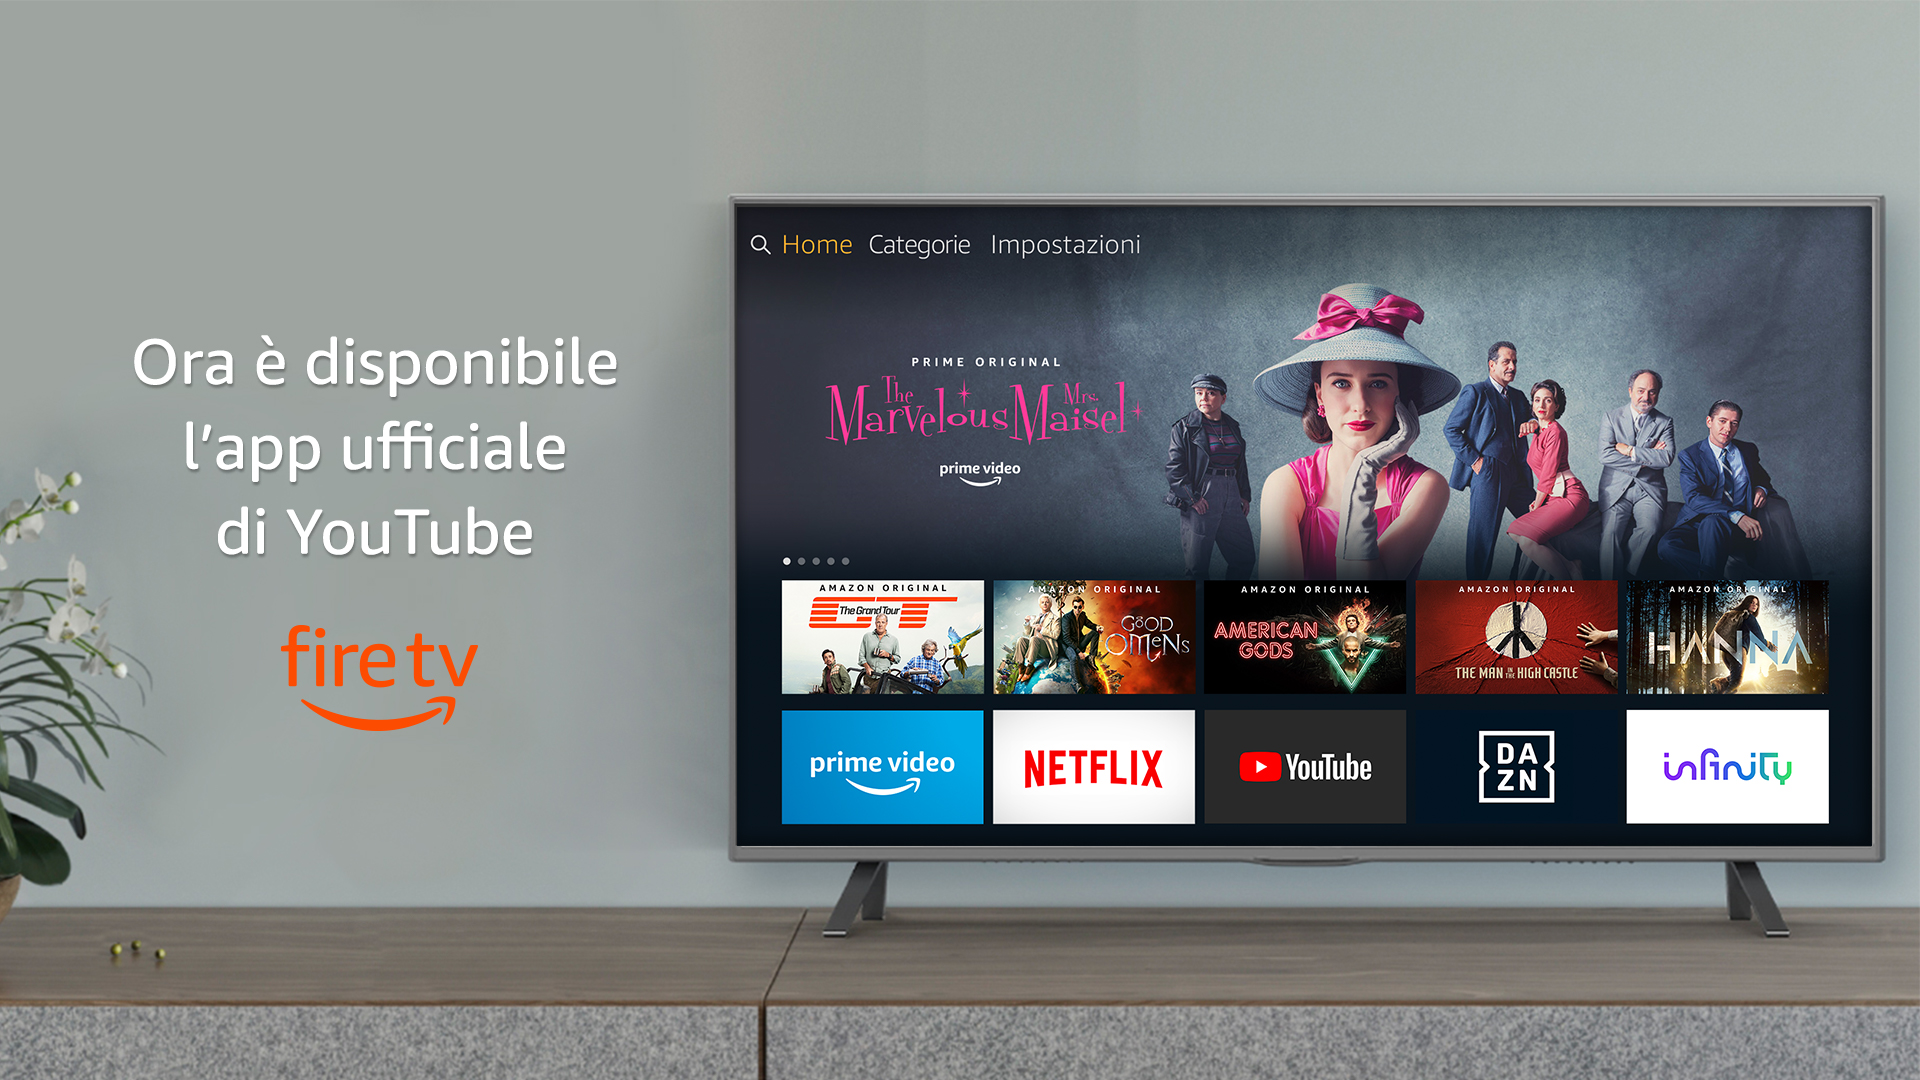 Youtube disponibile su Fire TV e Prime Video disponibile su Chromecast thumbnail